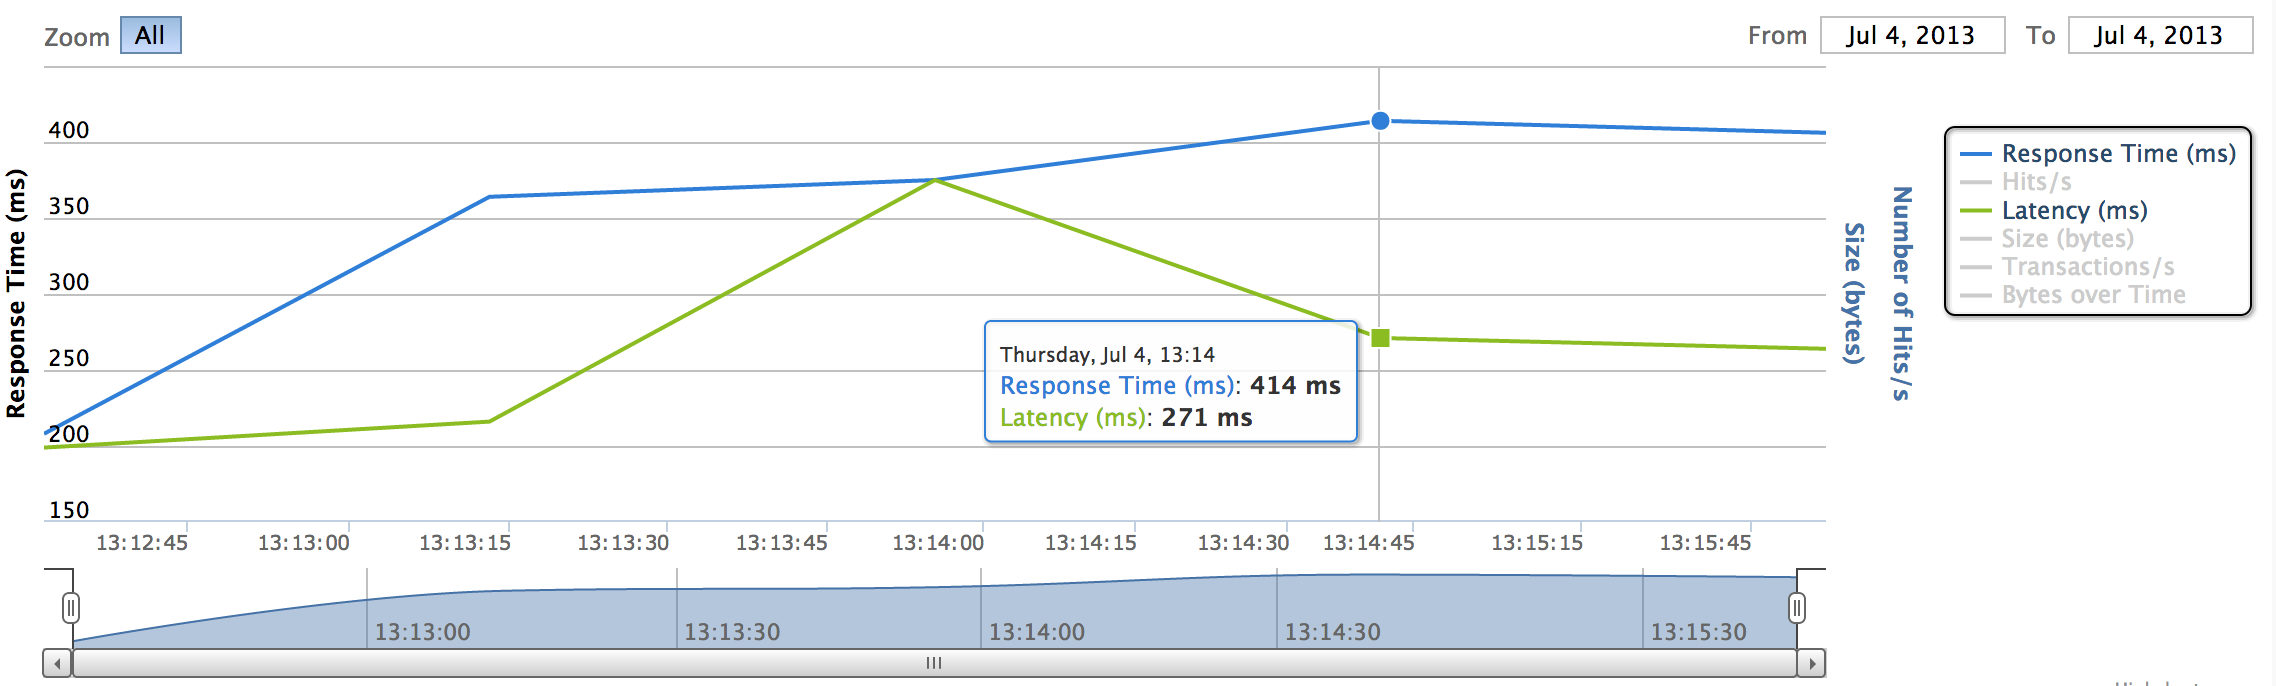 latency and response time